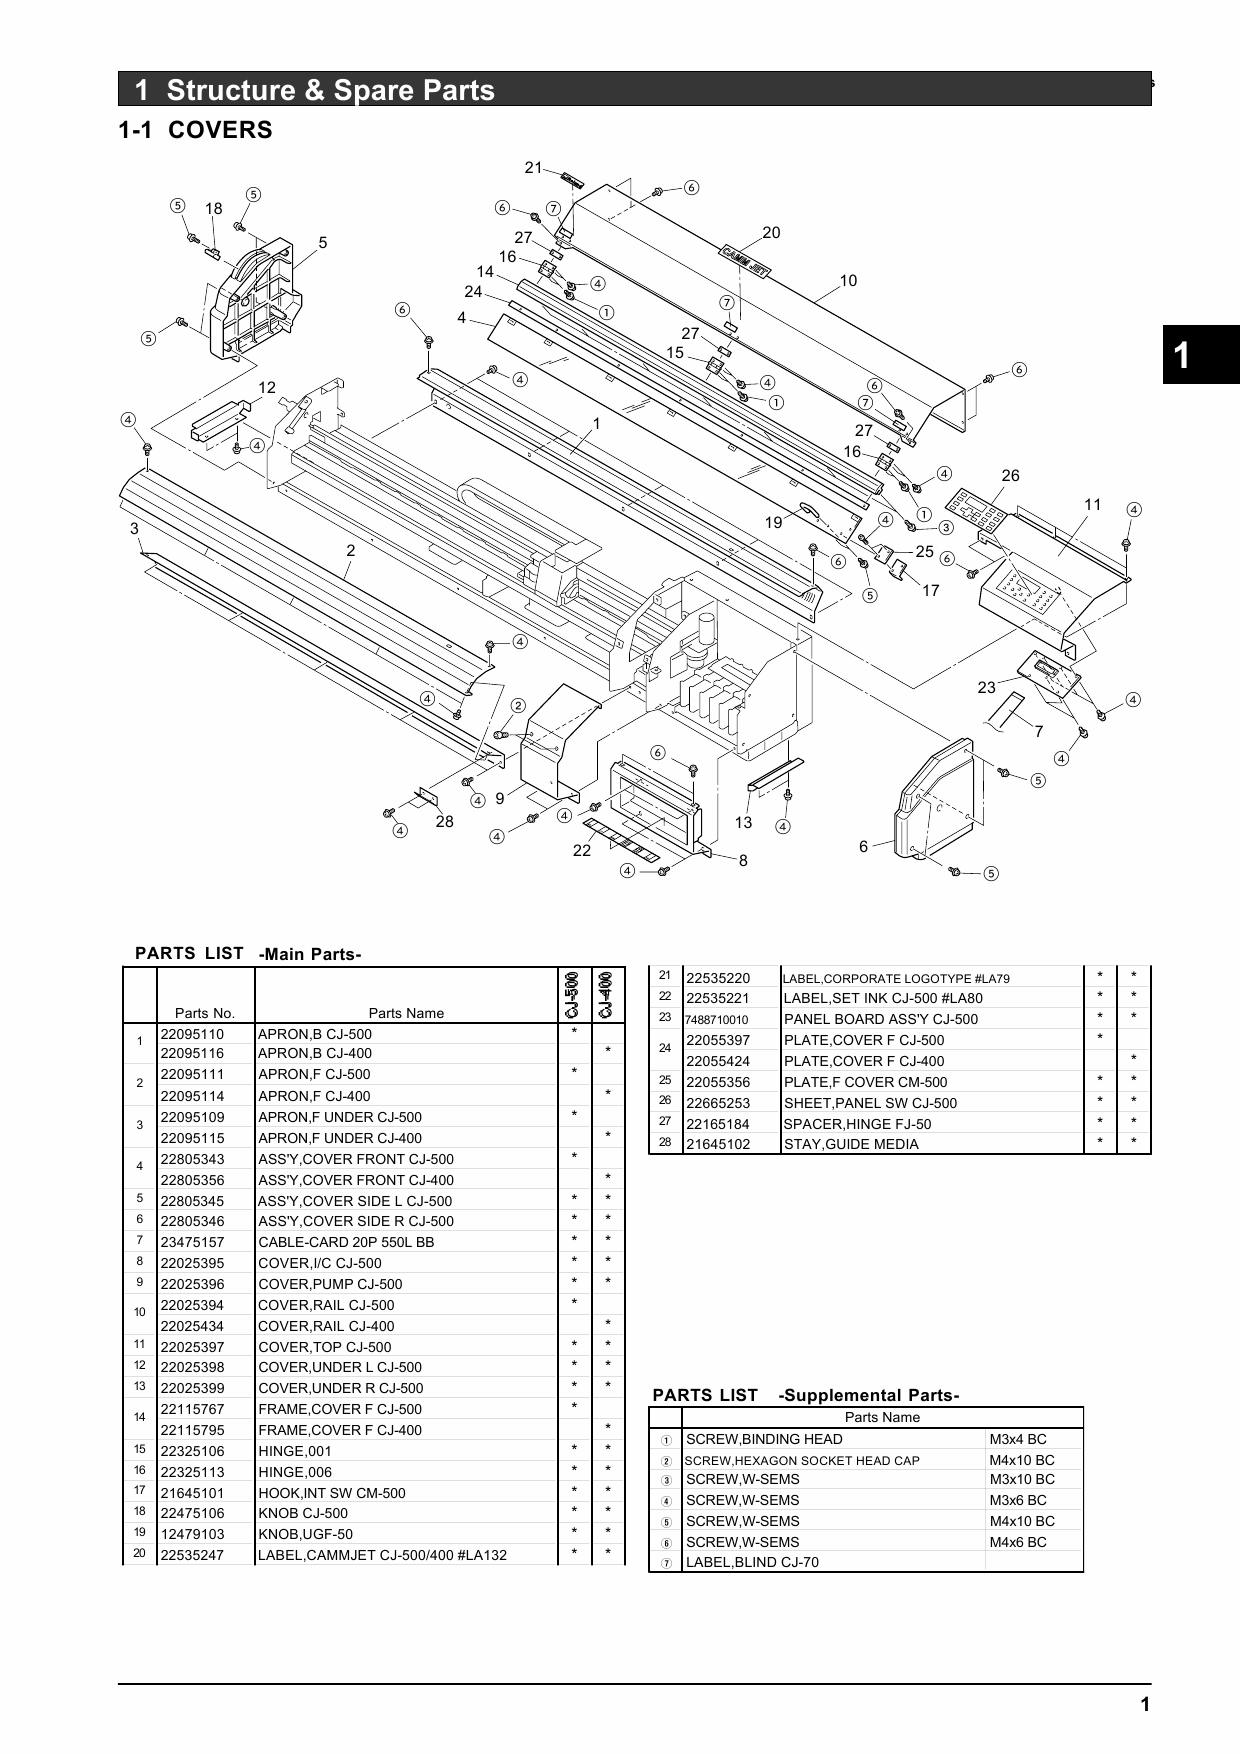 Roland CAMMJET CJ 500 400 Service Notes Manual-2